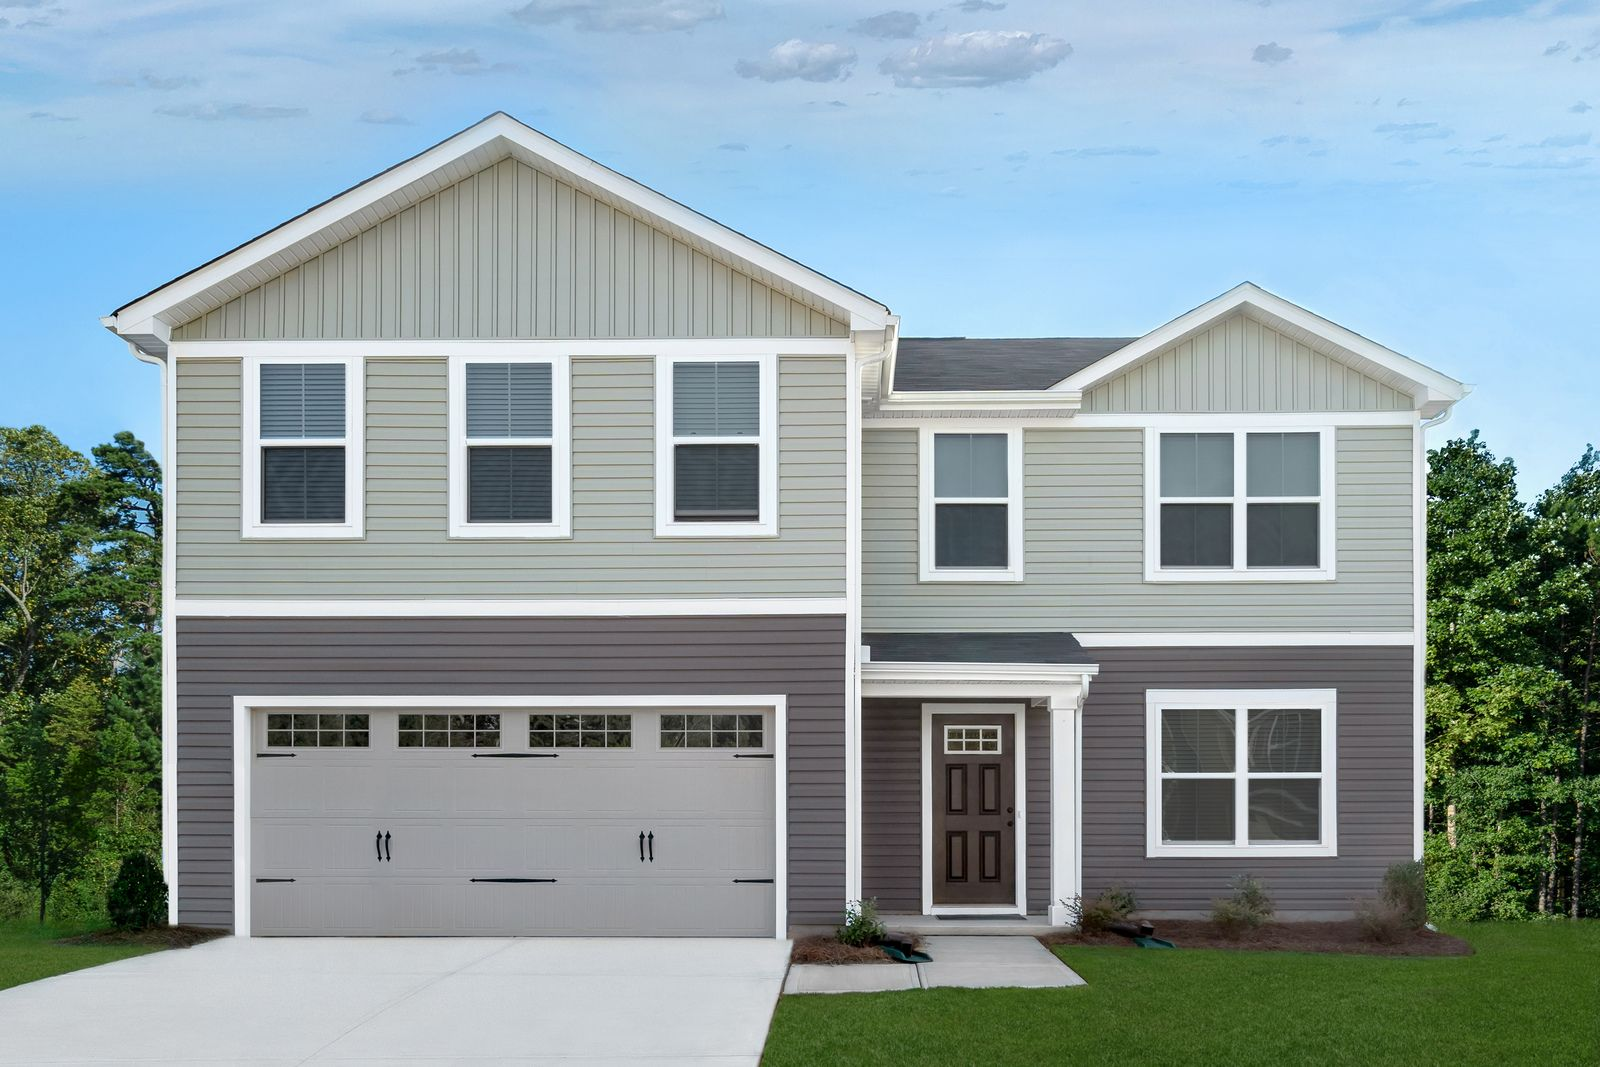 LOWEST-PRICED NEW HOMES IN CLARK-SHAWNEE SCHOOLS AT BRIDGEWATER:Lowest-priced new homes in Clark-Shawnee Schools. Own for same as rent- incl. appliances, 3-5 beds, available basement, 2-car garage, 6 min to I-70- Low $200's.Click here to schedule your visit!